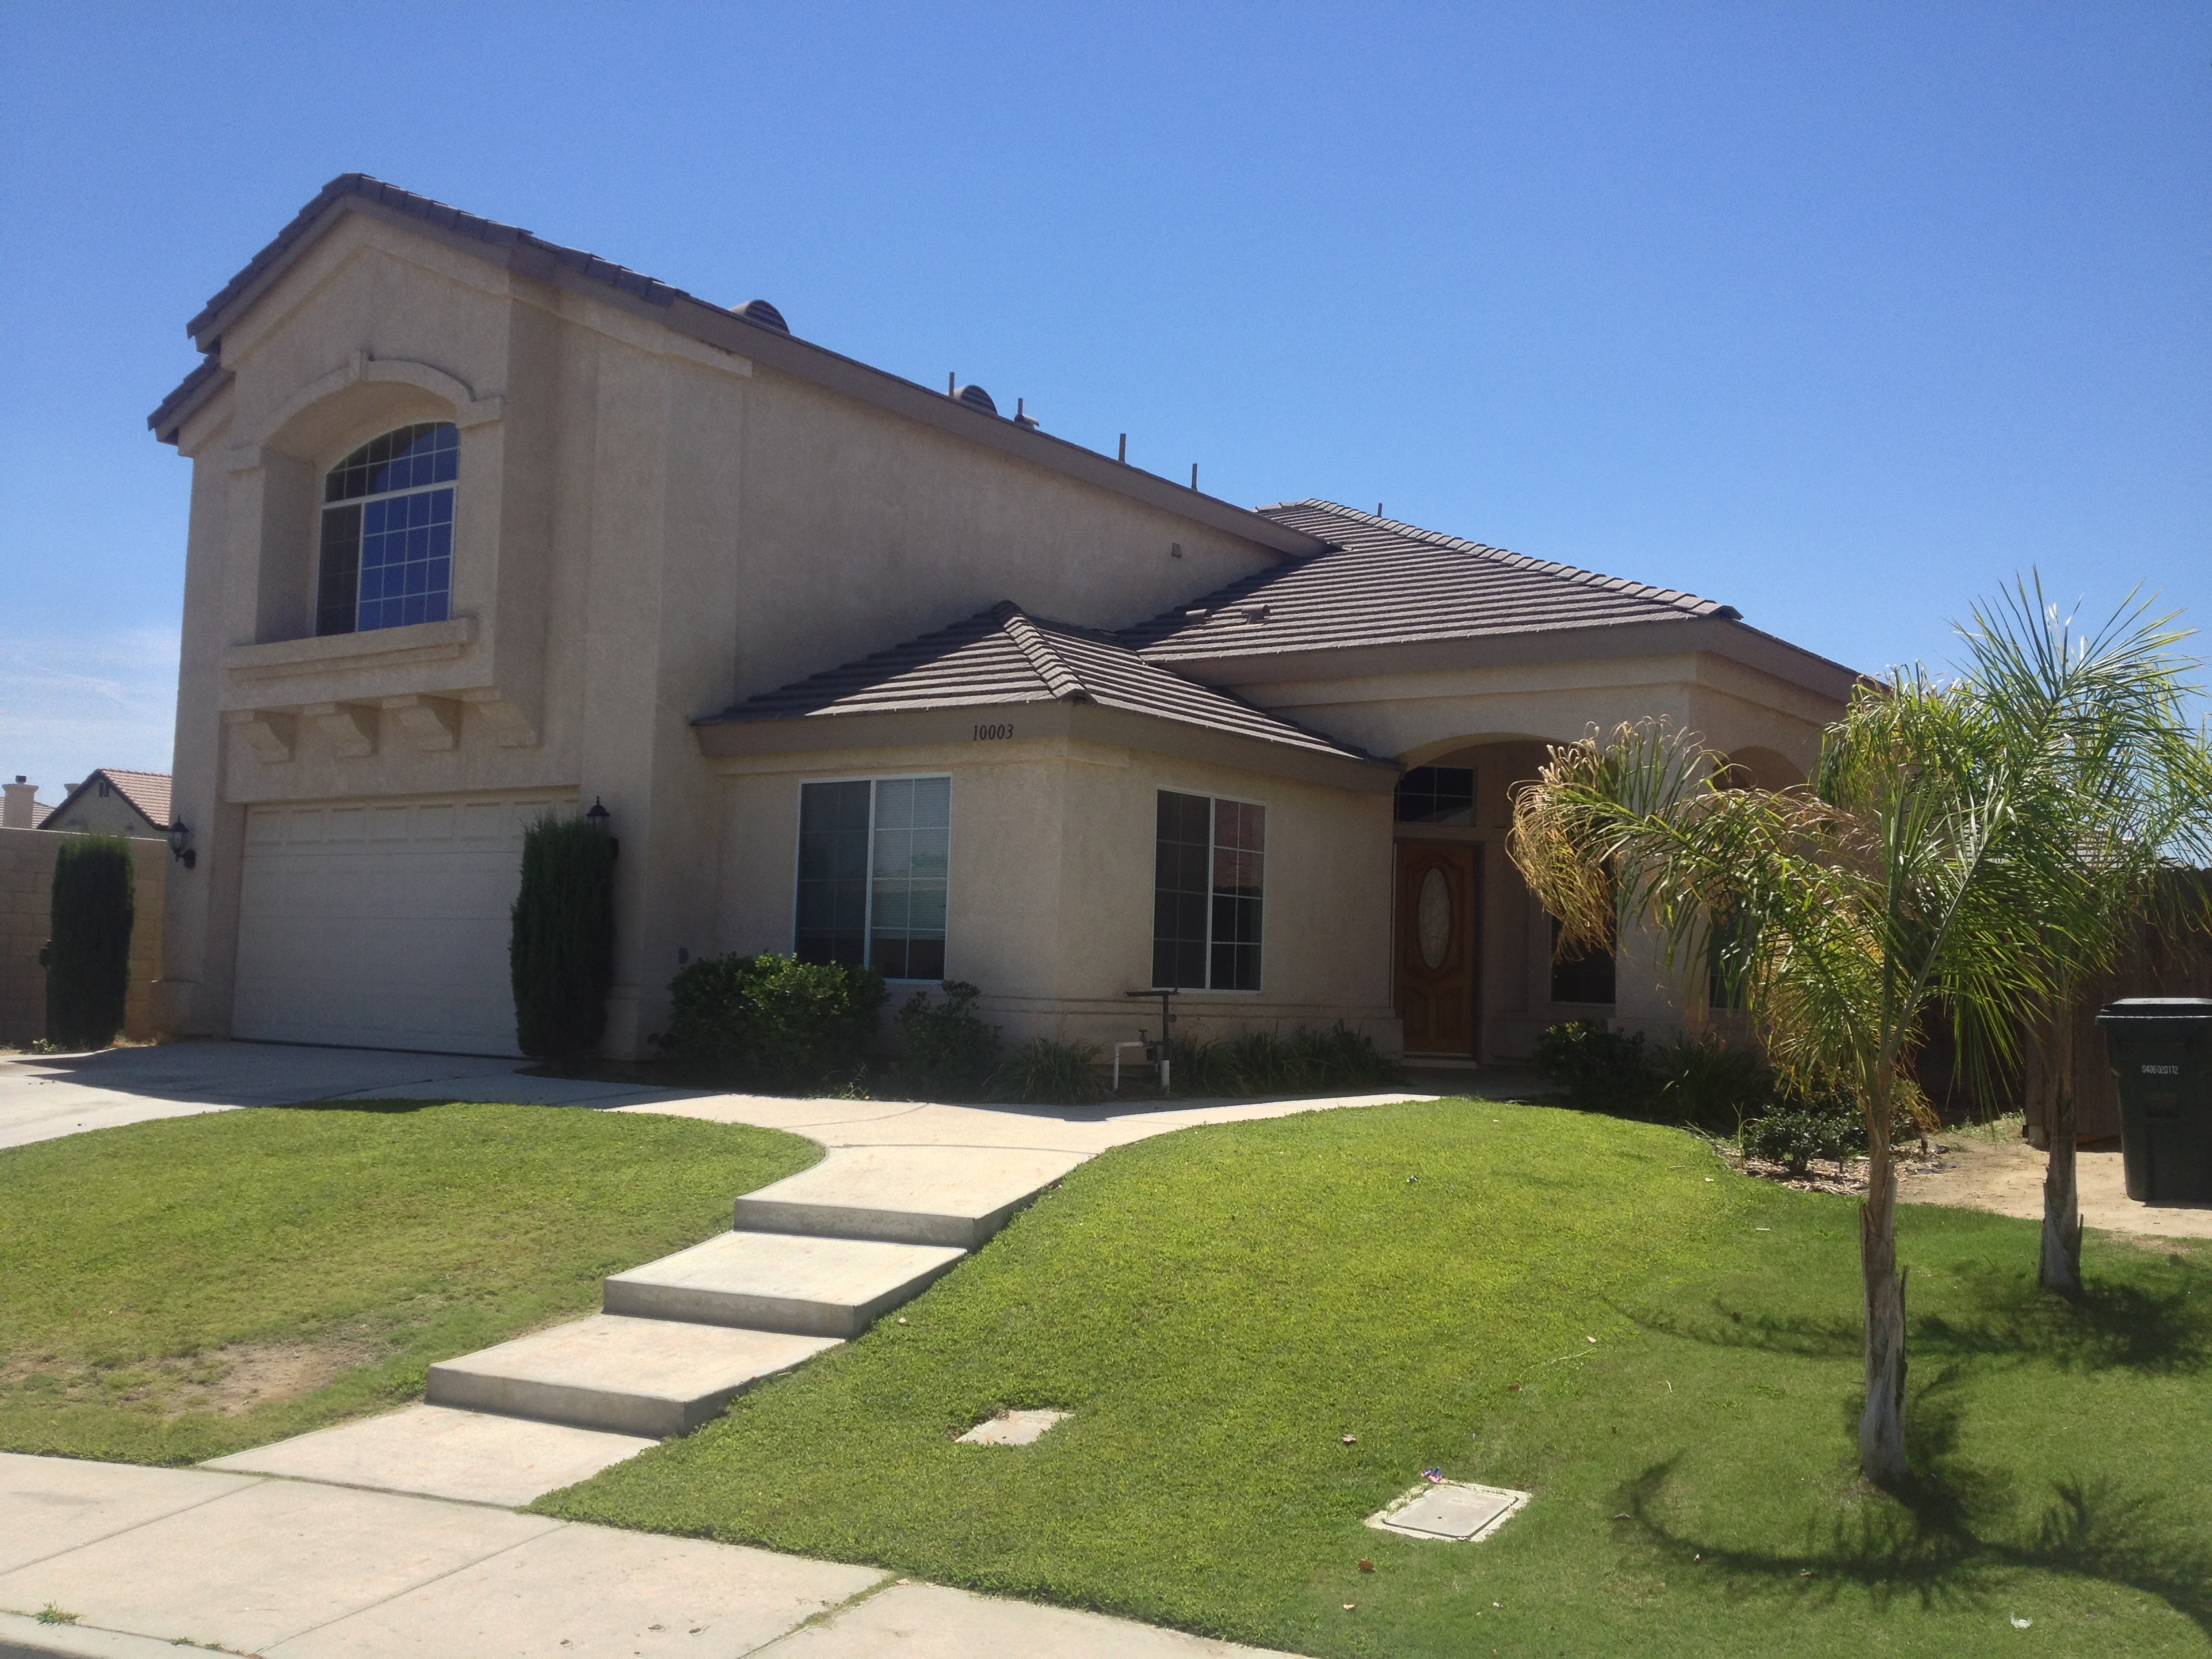 $1550 – 10003 St. Albans Ave., Bakersfield, CA 93311 rented southwest home